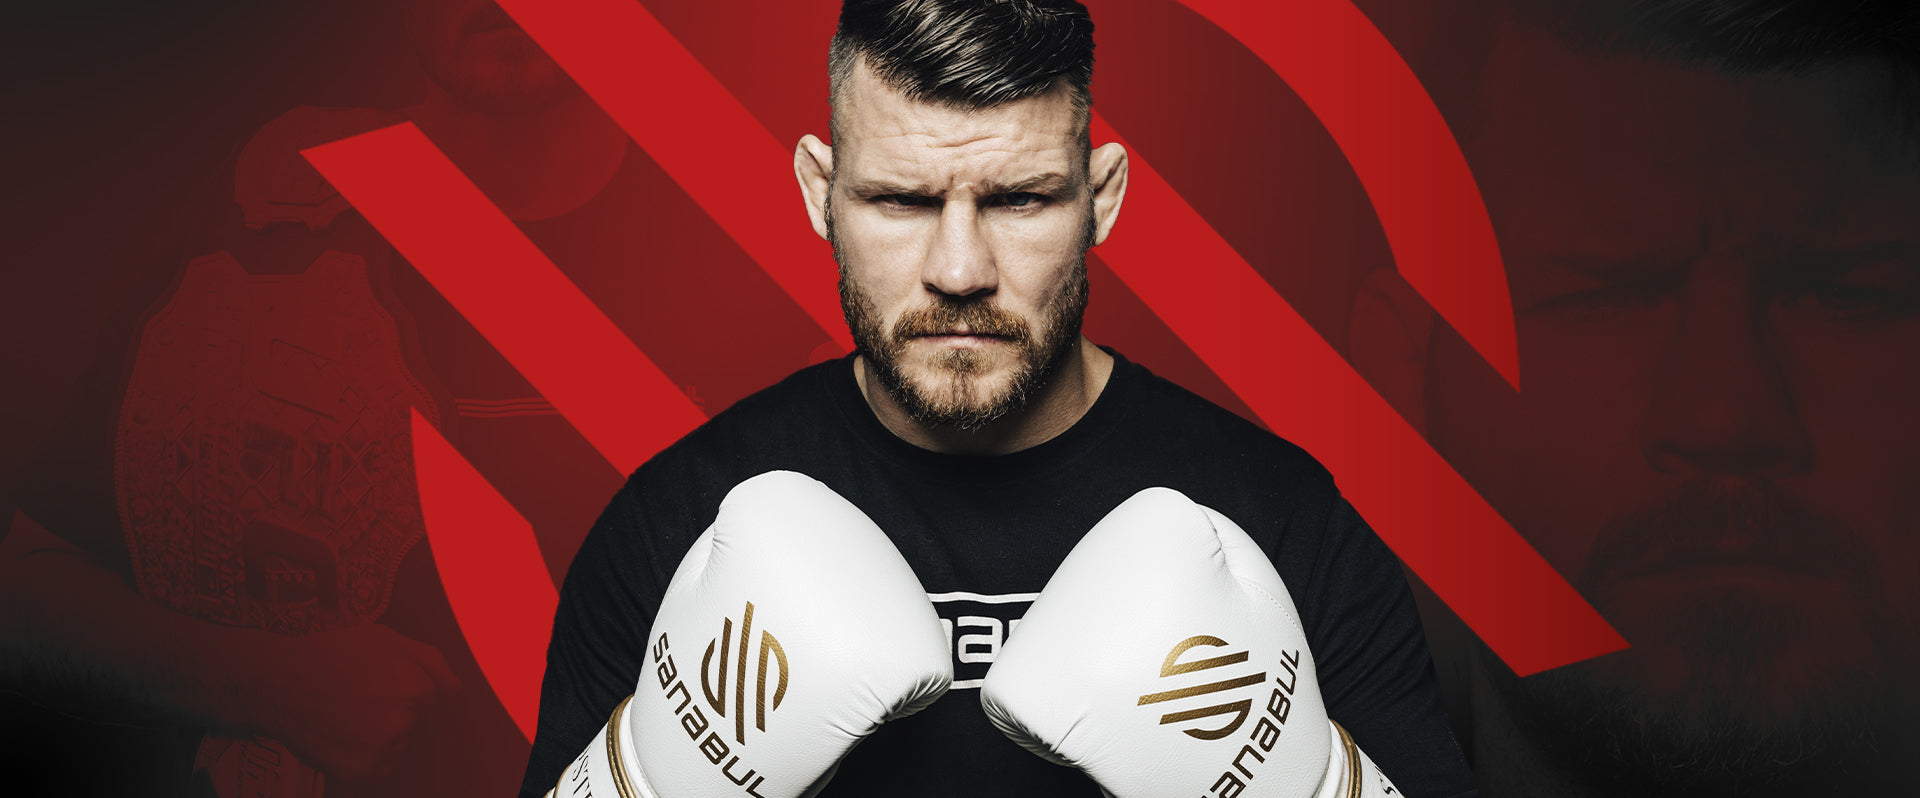 The Legacy of Bisping: Outlasting A Generation To Get The Last Laugh